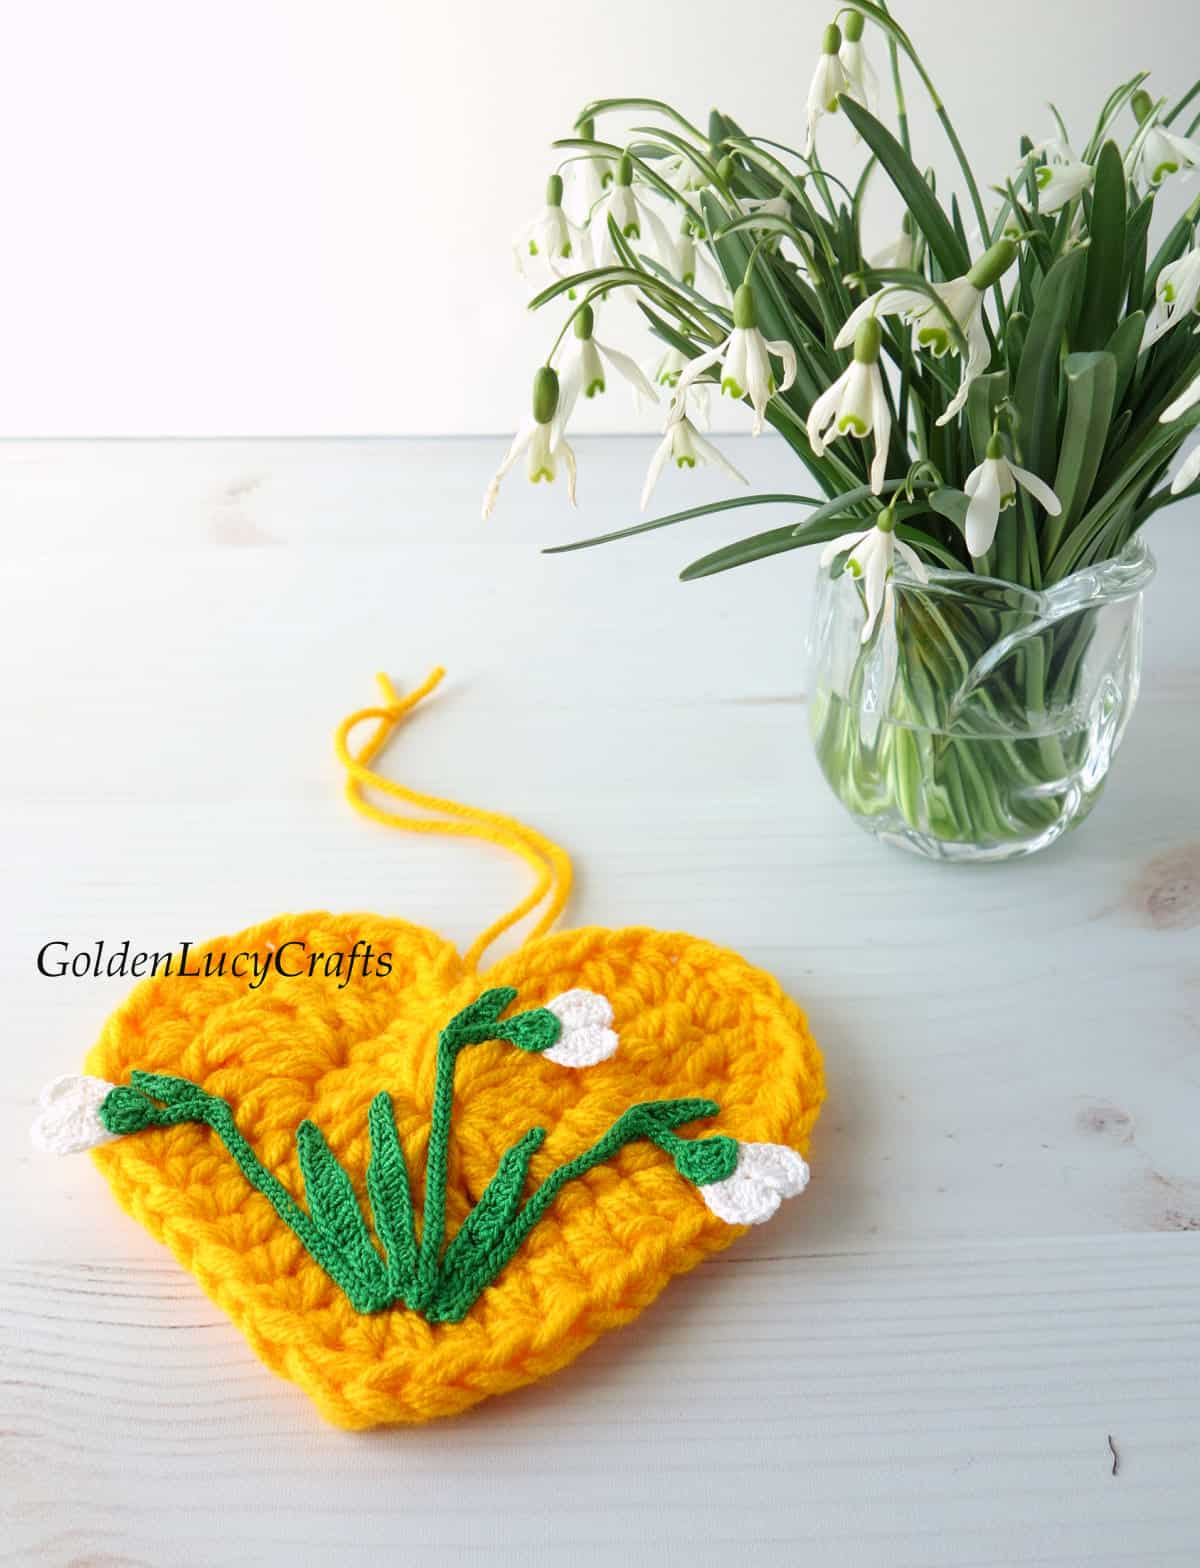 Crocheted yellow heart with crocheted snowdrops on it laying on the surface, real snowdrops in a vase in the background.